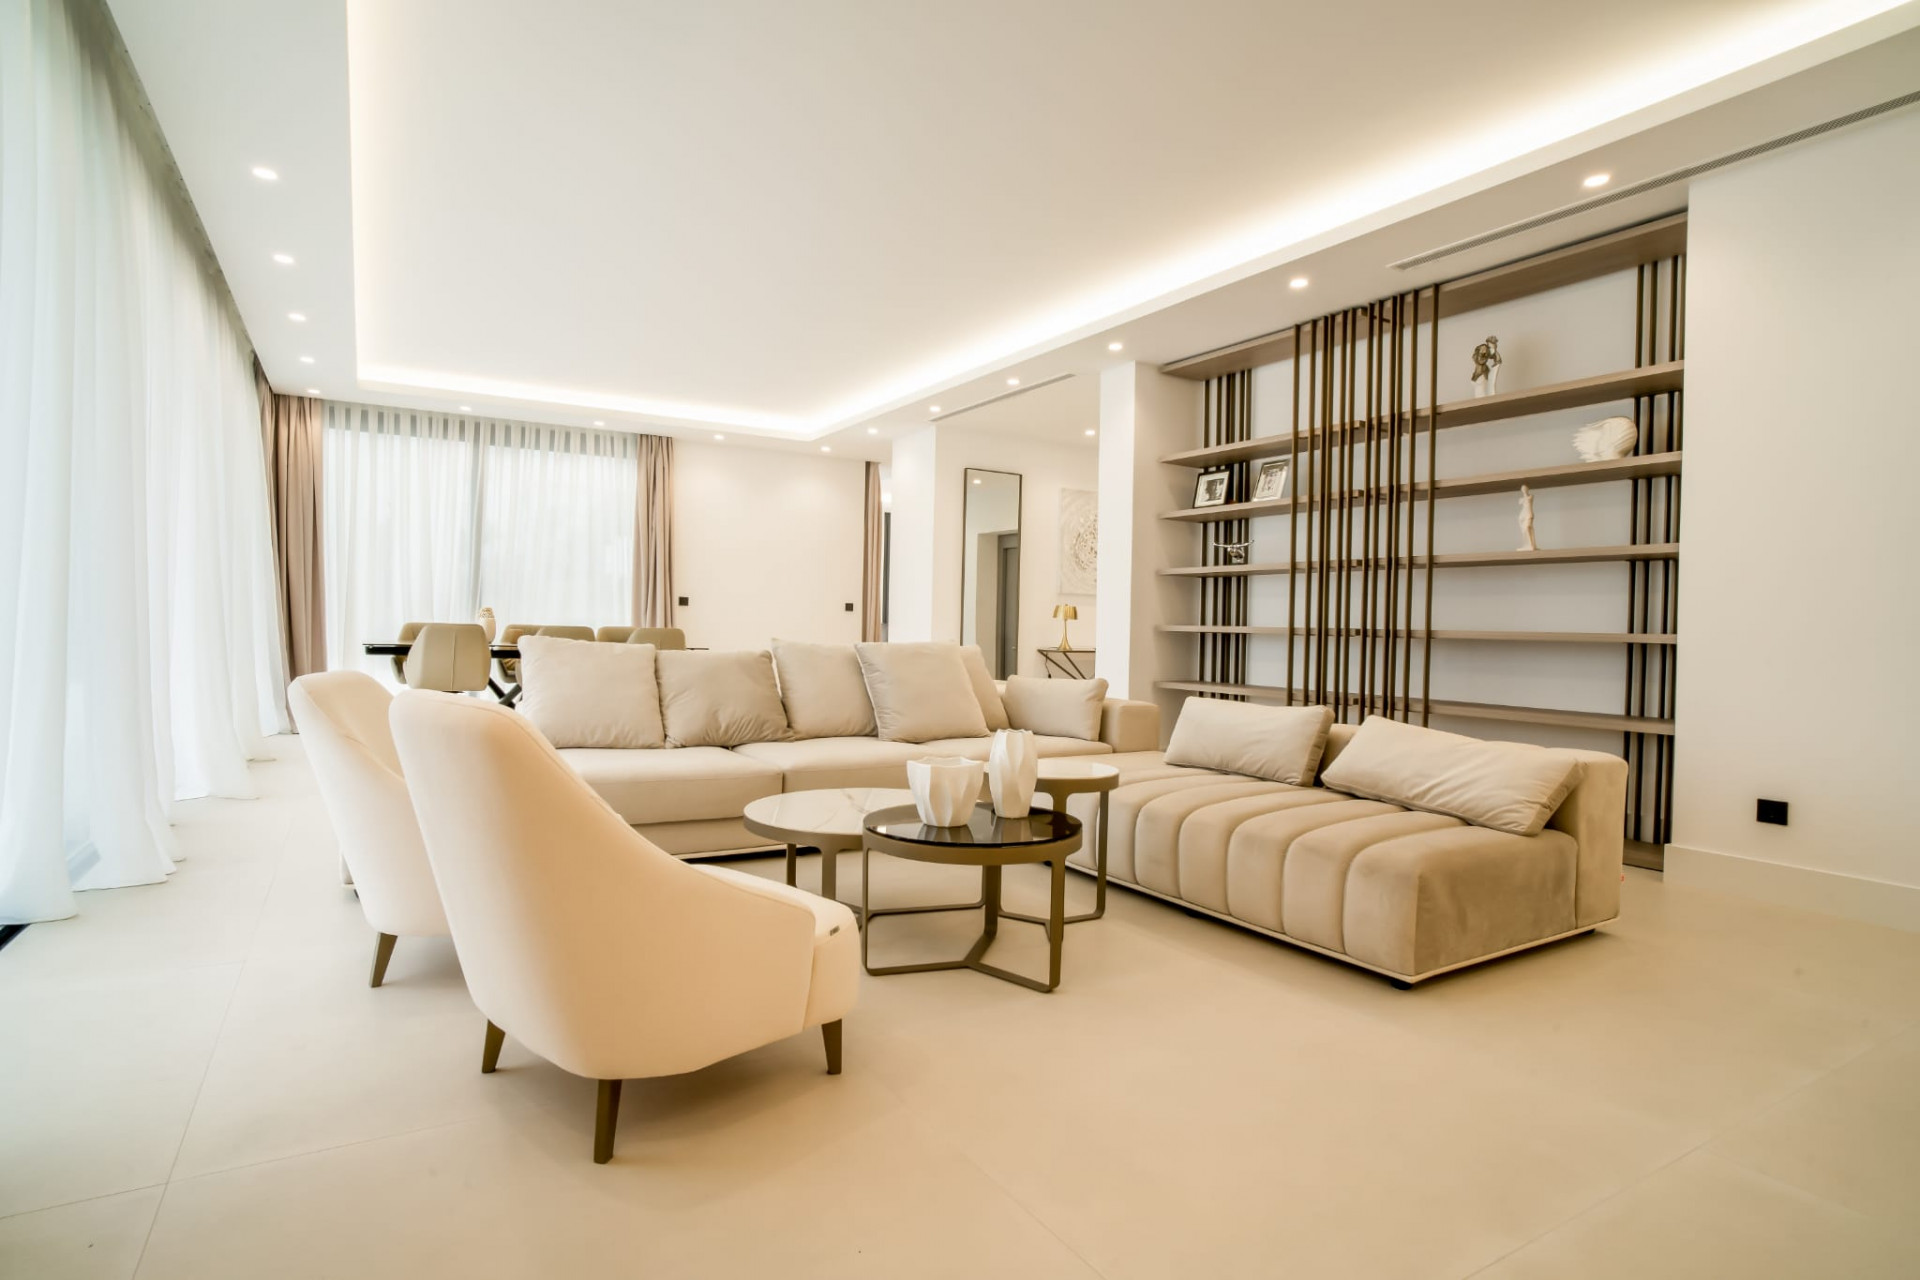 5 factors that influence the value of real estate in Marbella.